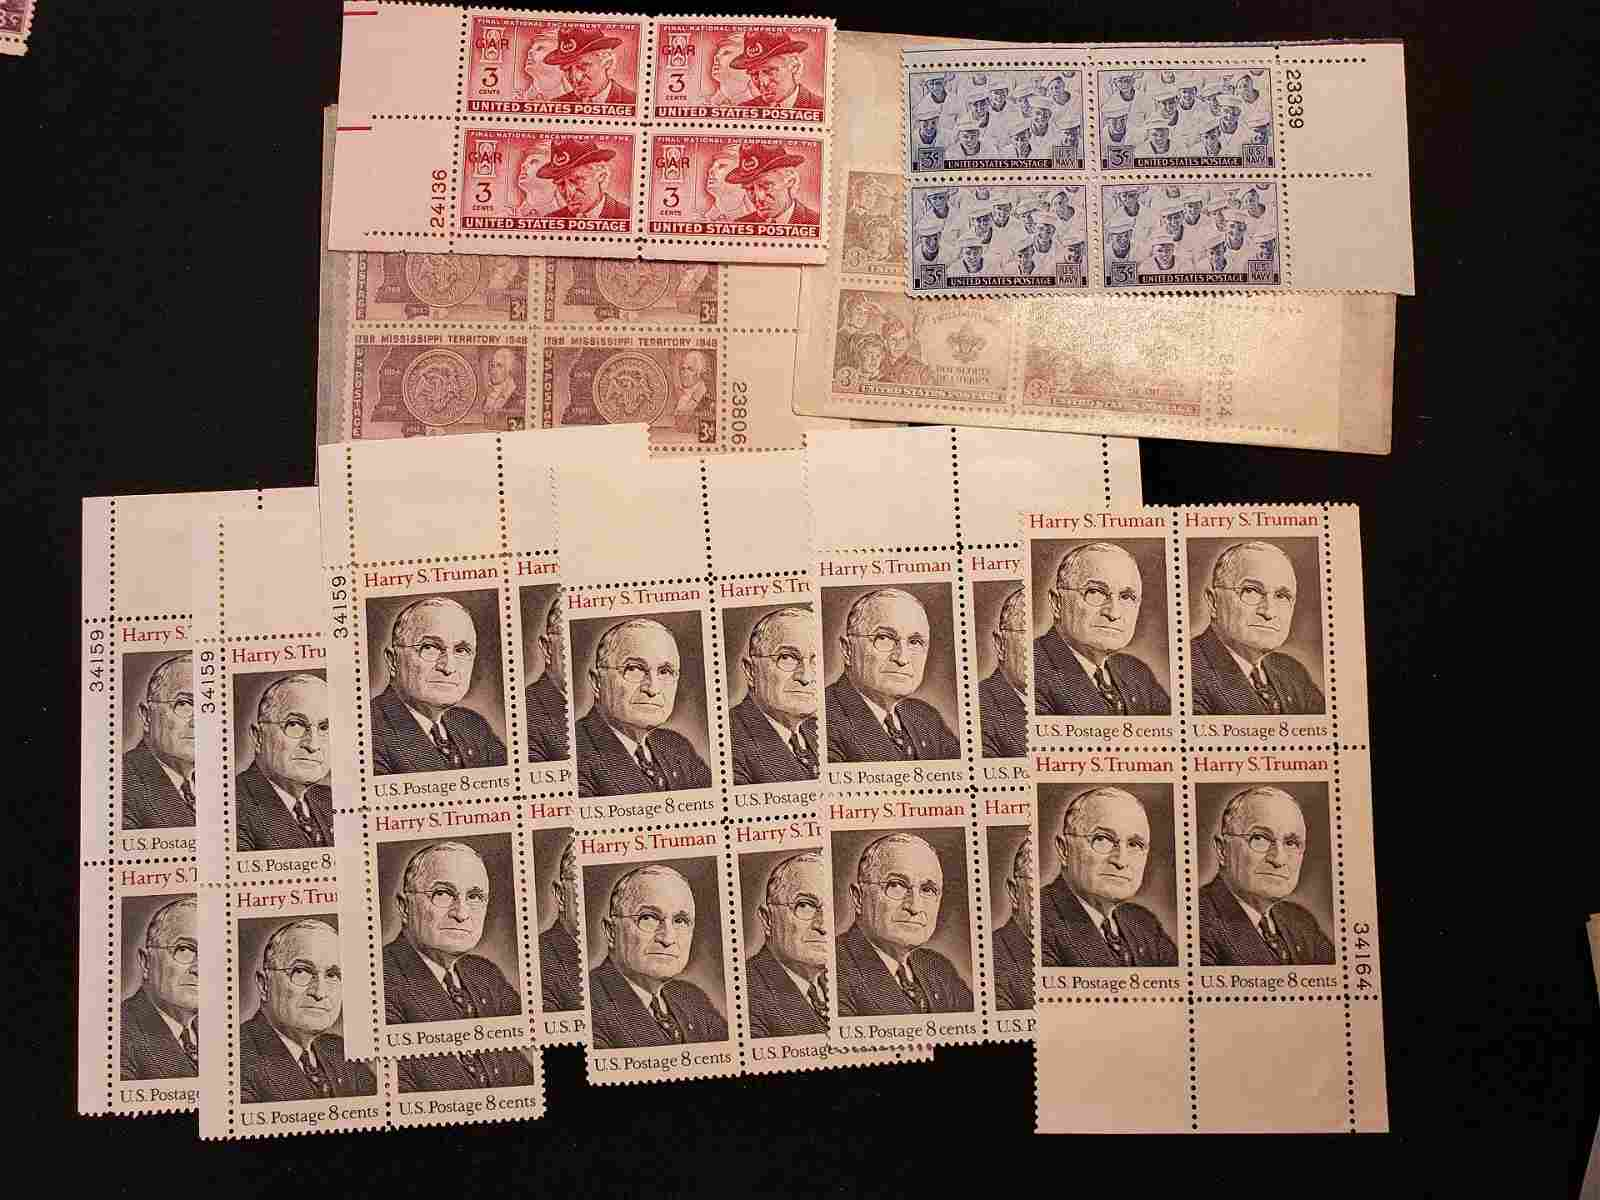 UNITED STATES POSTAGE STAMPS LOT OF 10 U.S. MINT PLATE